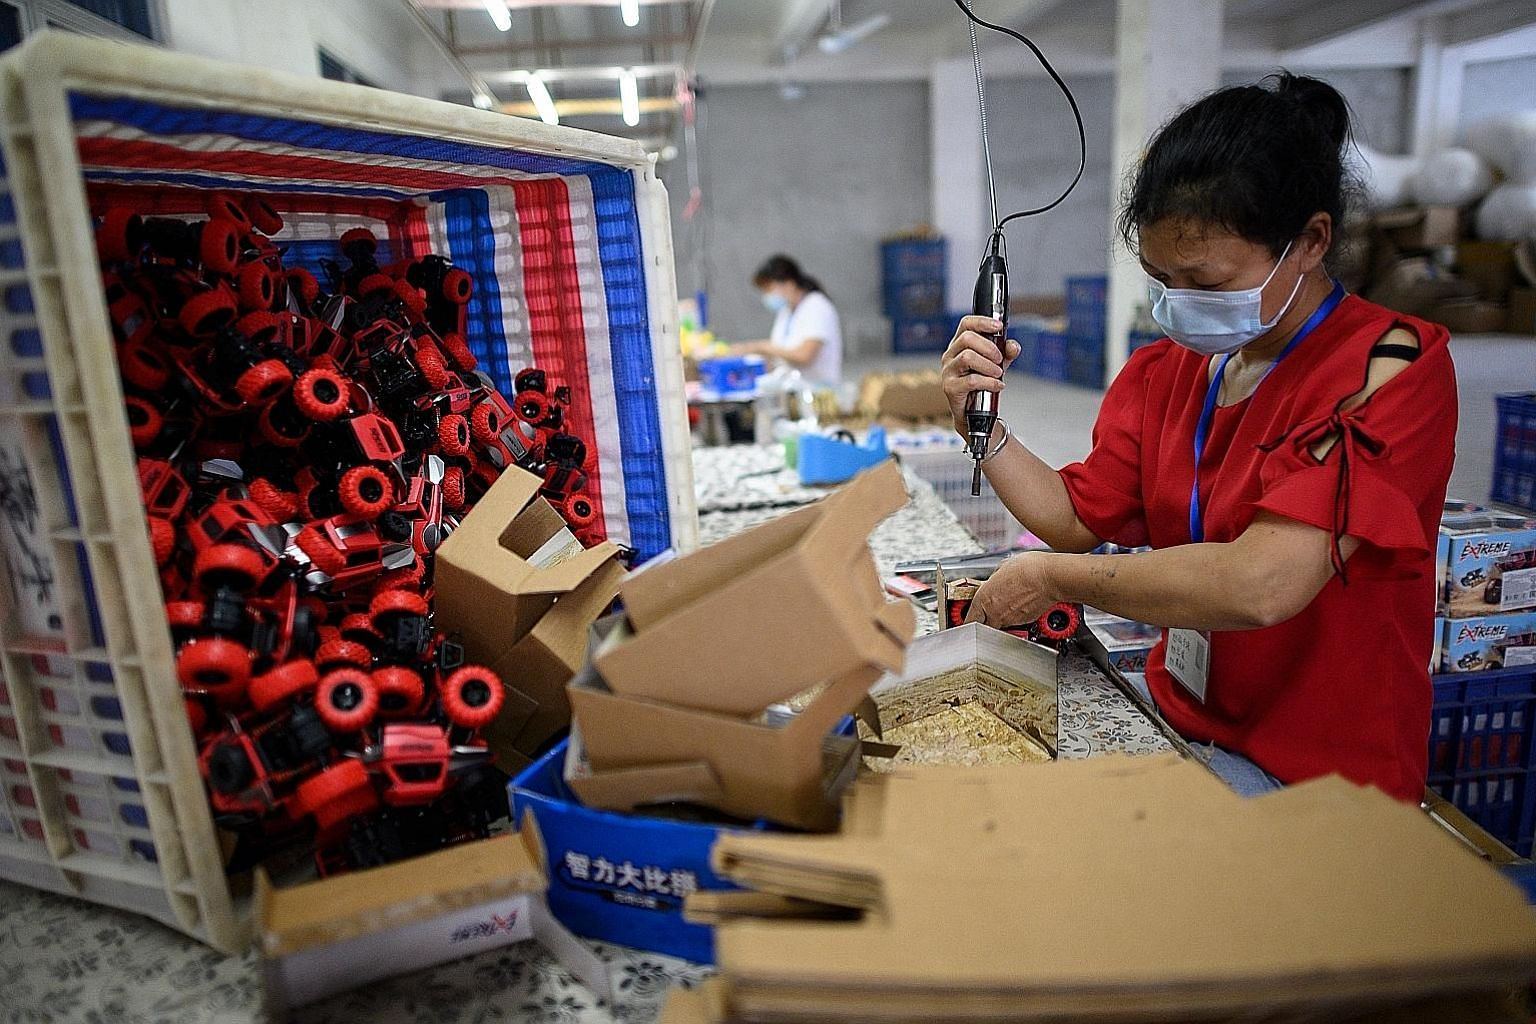 A worker assembling toy cars at a Shantou factory in China's Guangdong province last week. China's economy is stirring back to life after virus cases dwindled from a peak in February, when activity came to a near-halt. But recovery is now hampered by